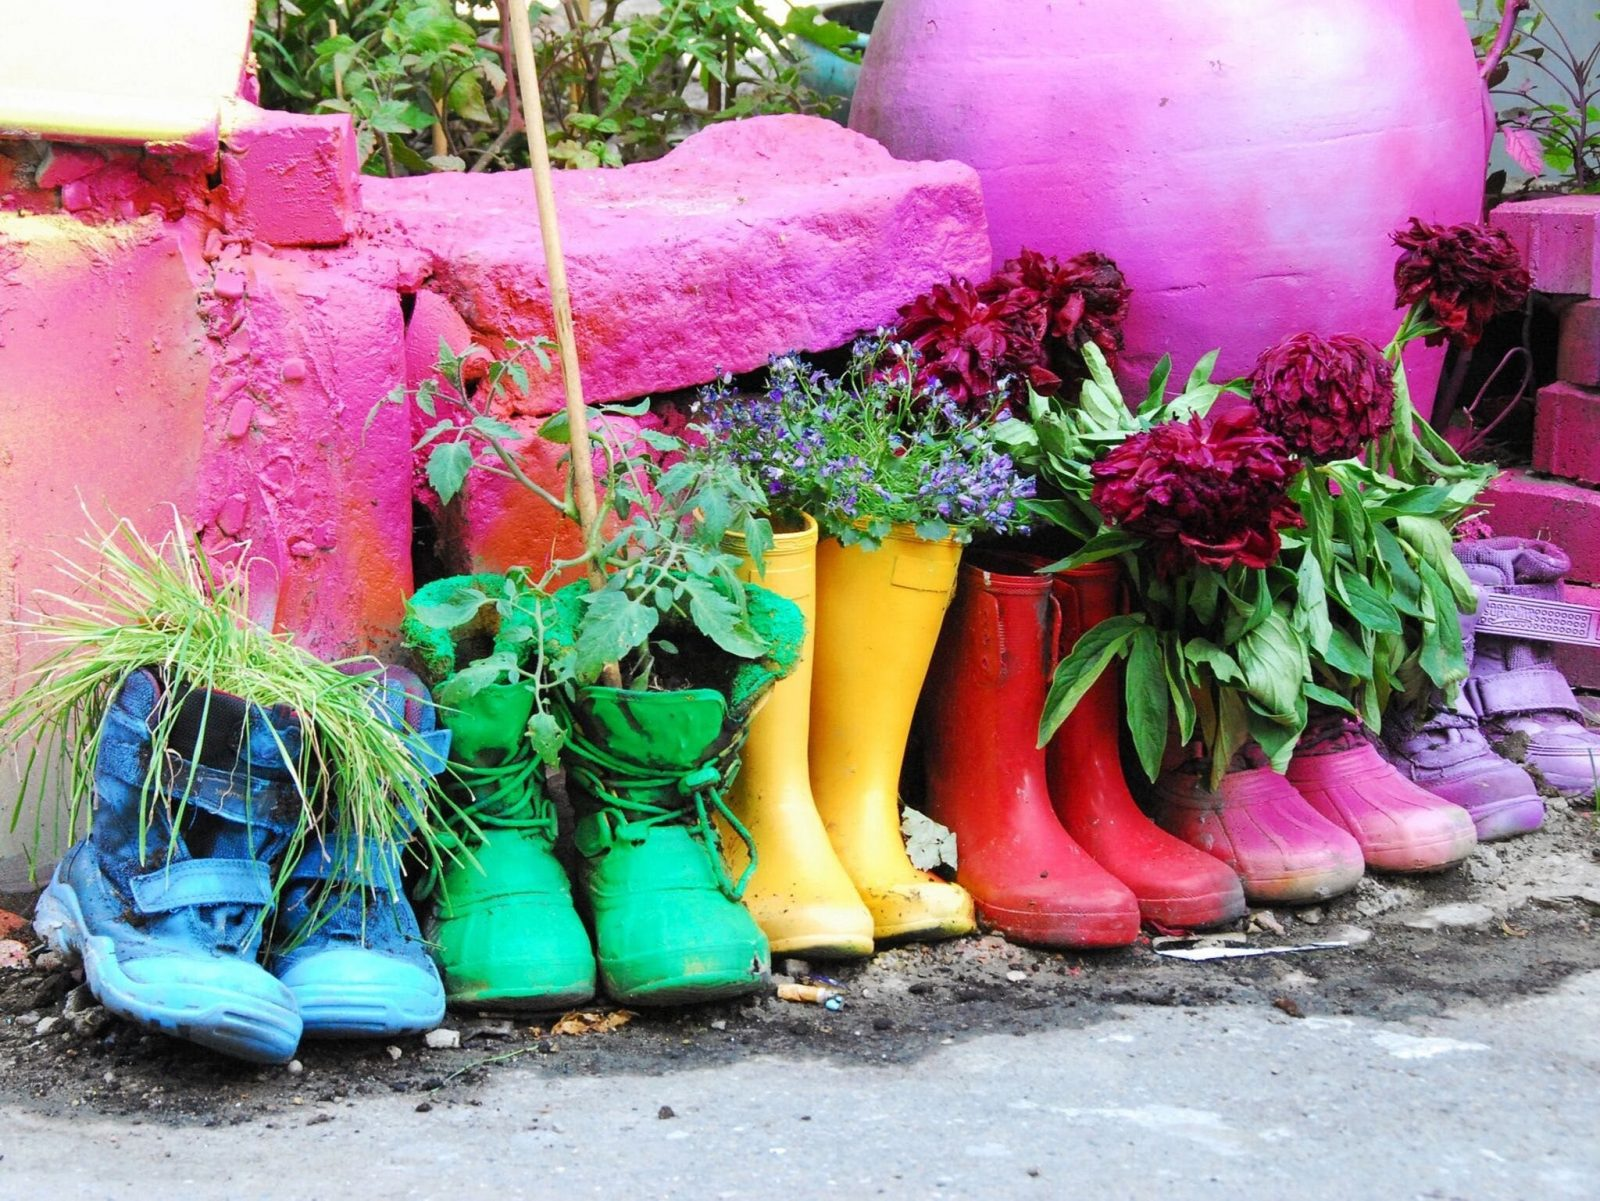 Coloured shoes being used as planters